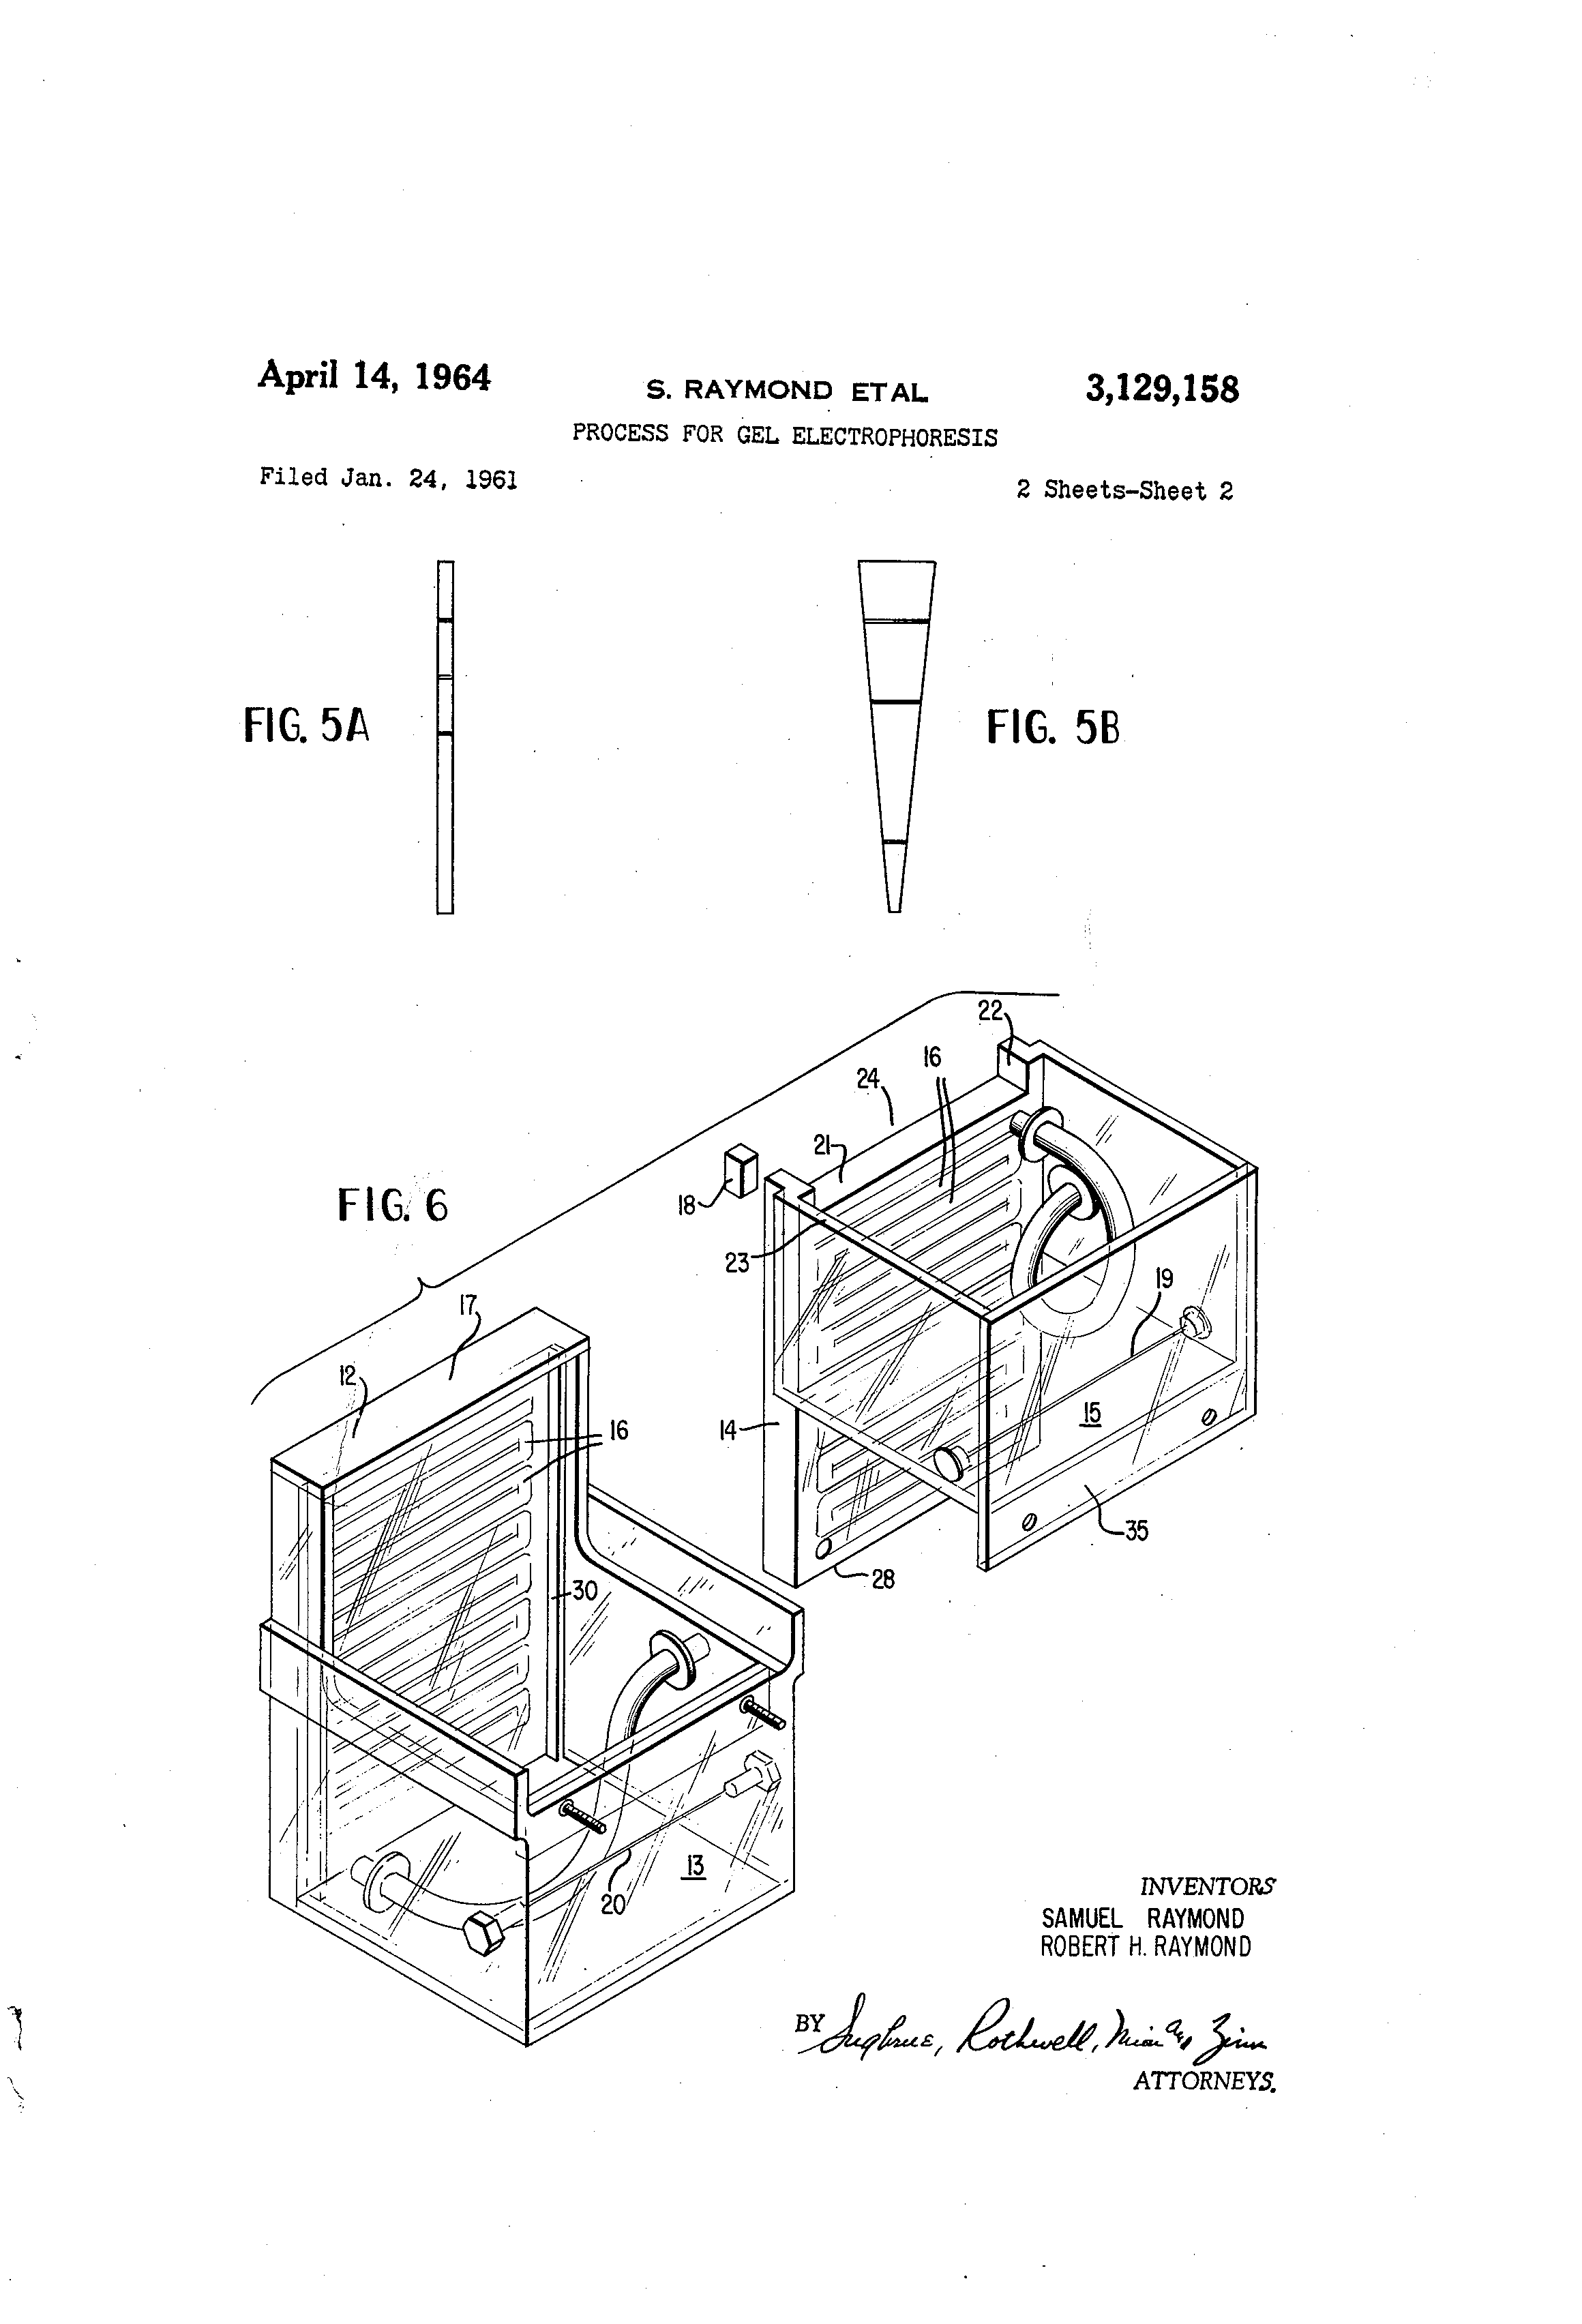 patent us3129158 - process for gel electrophoresis